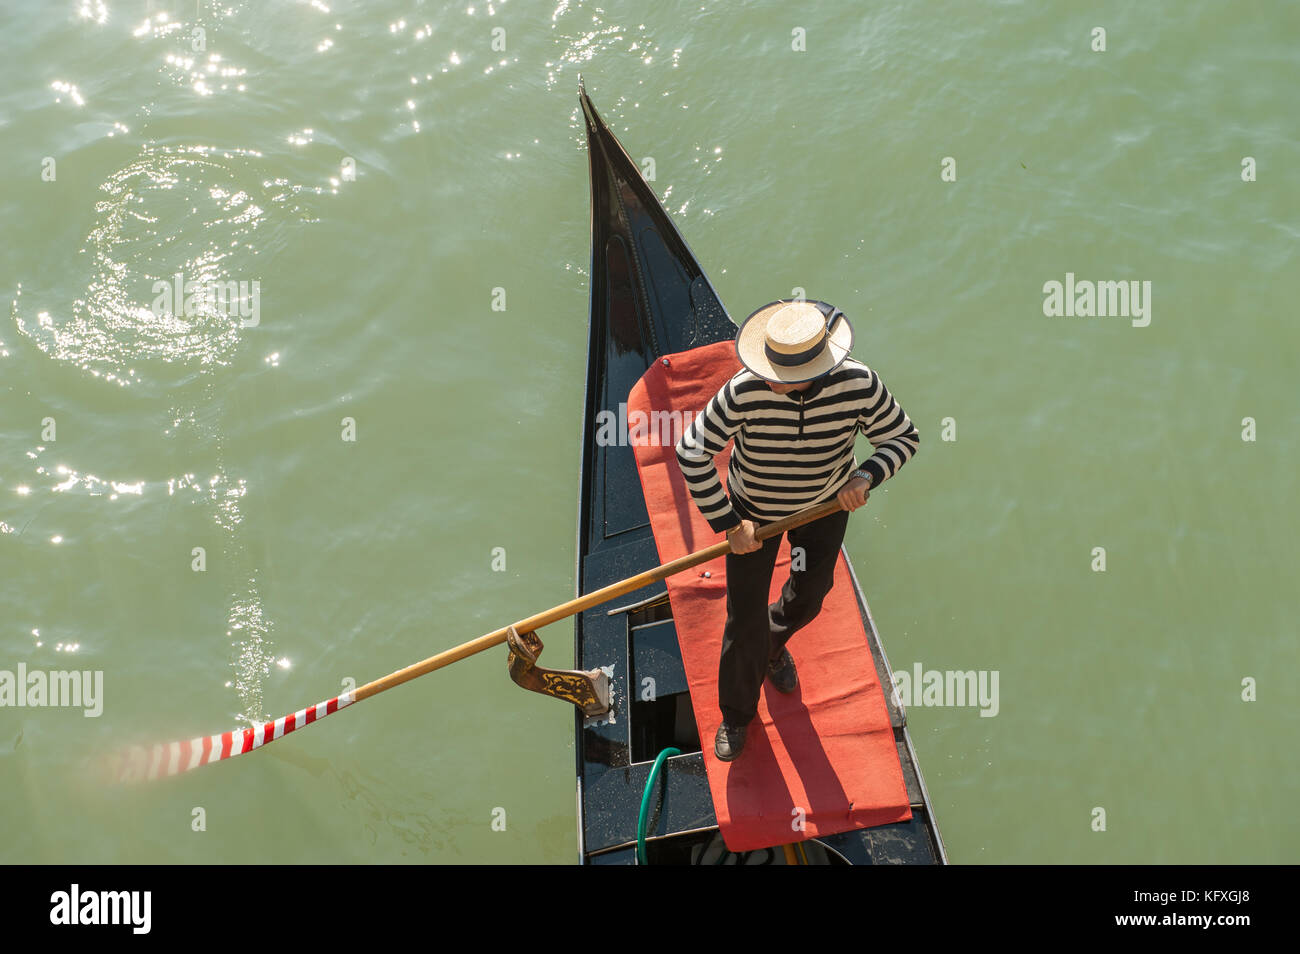 Gondolier in Grand Canal, Venice, Italy - Stock Image